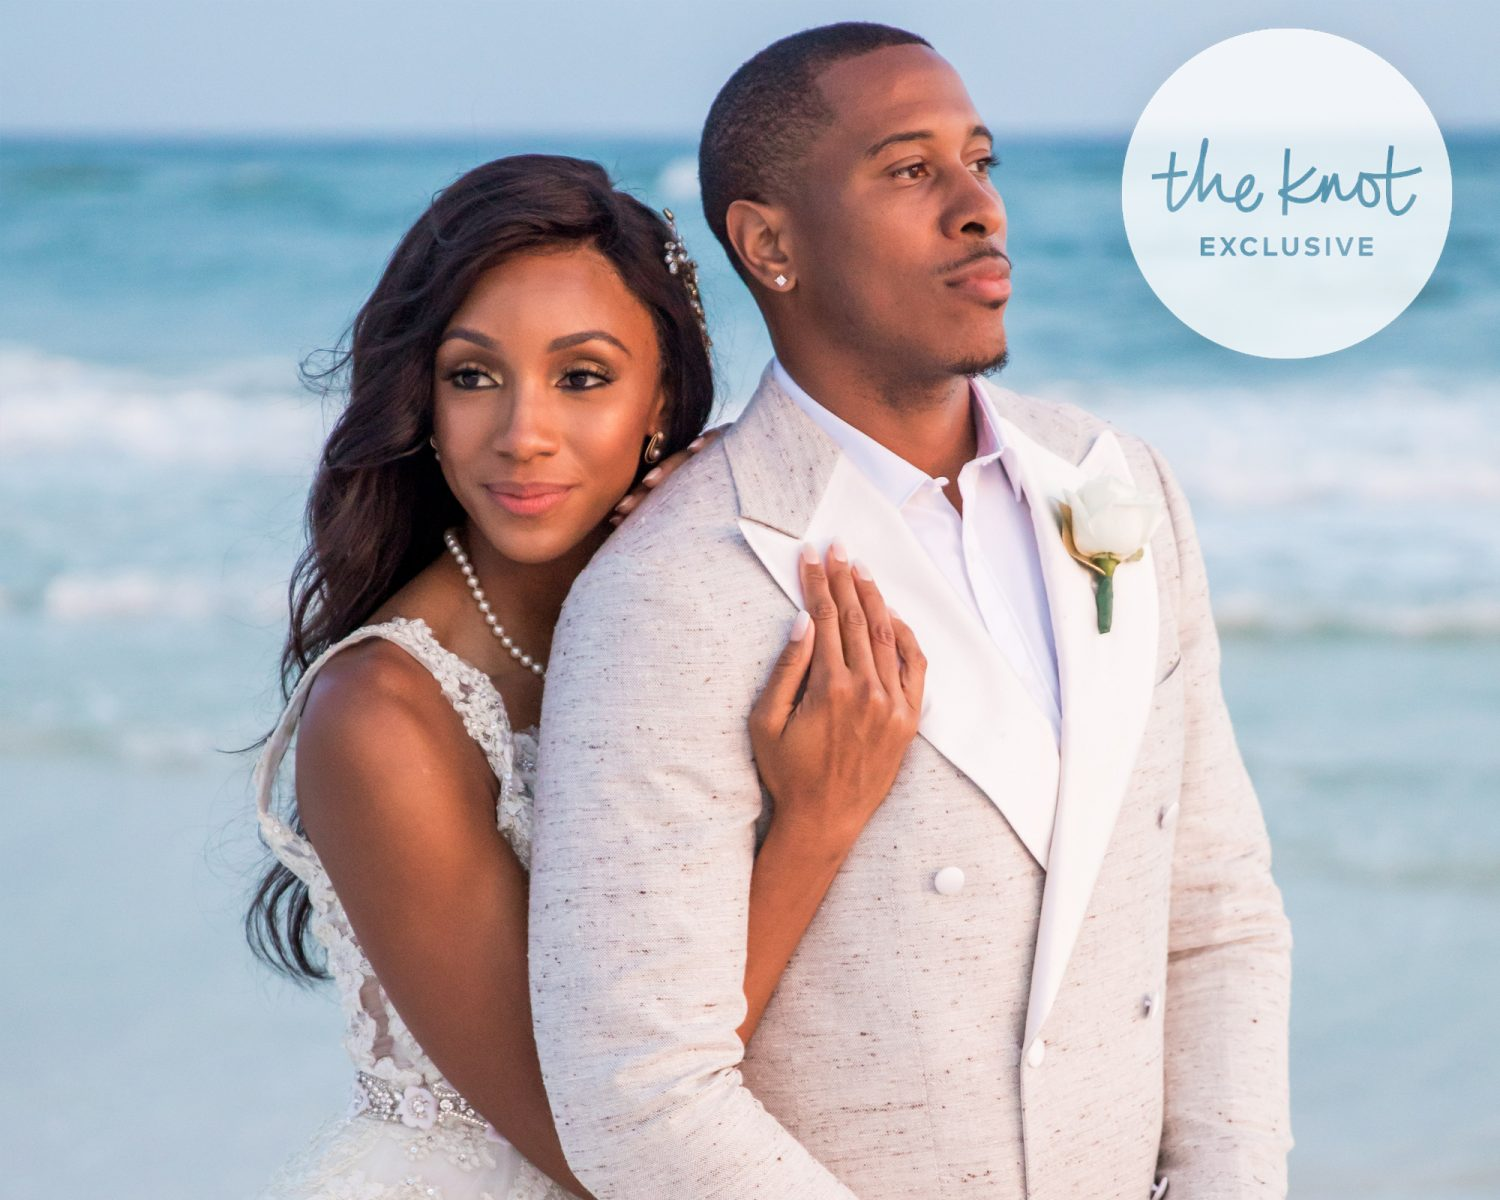 Exclusive: ESPN's Maria Taylor Reveals Her Wedding Album and More Marriage Details